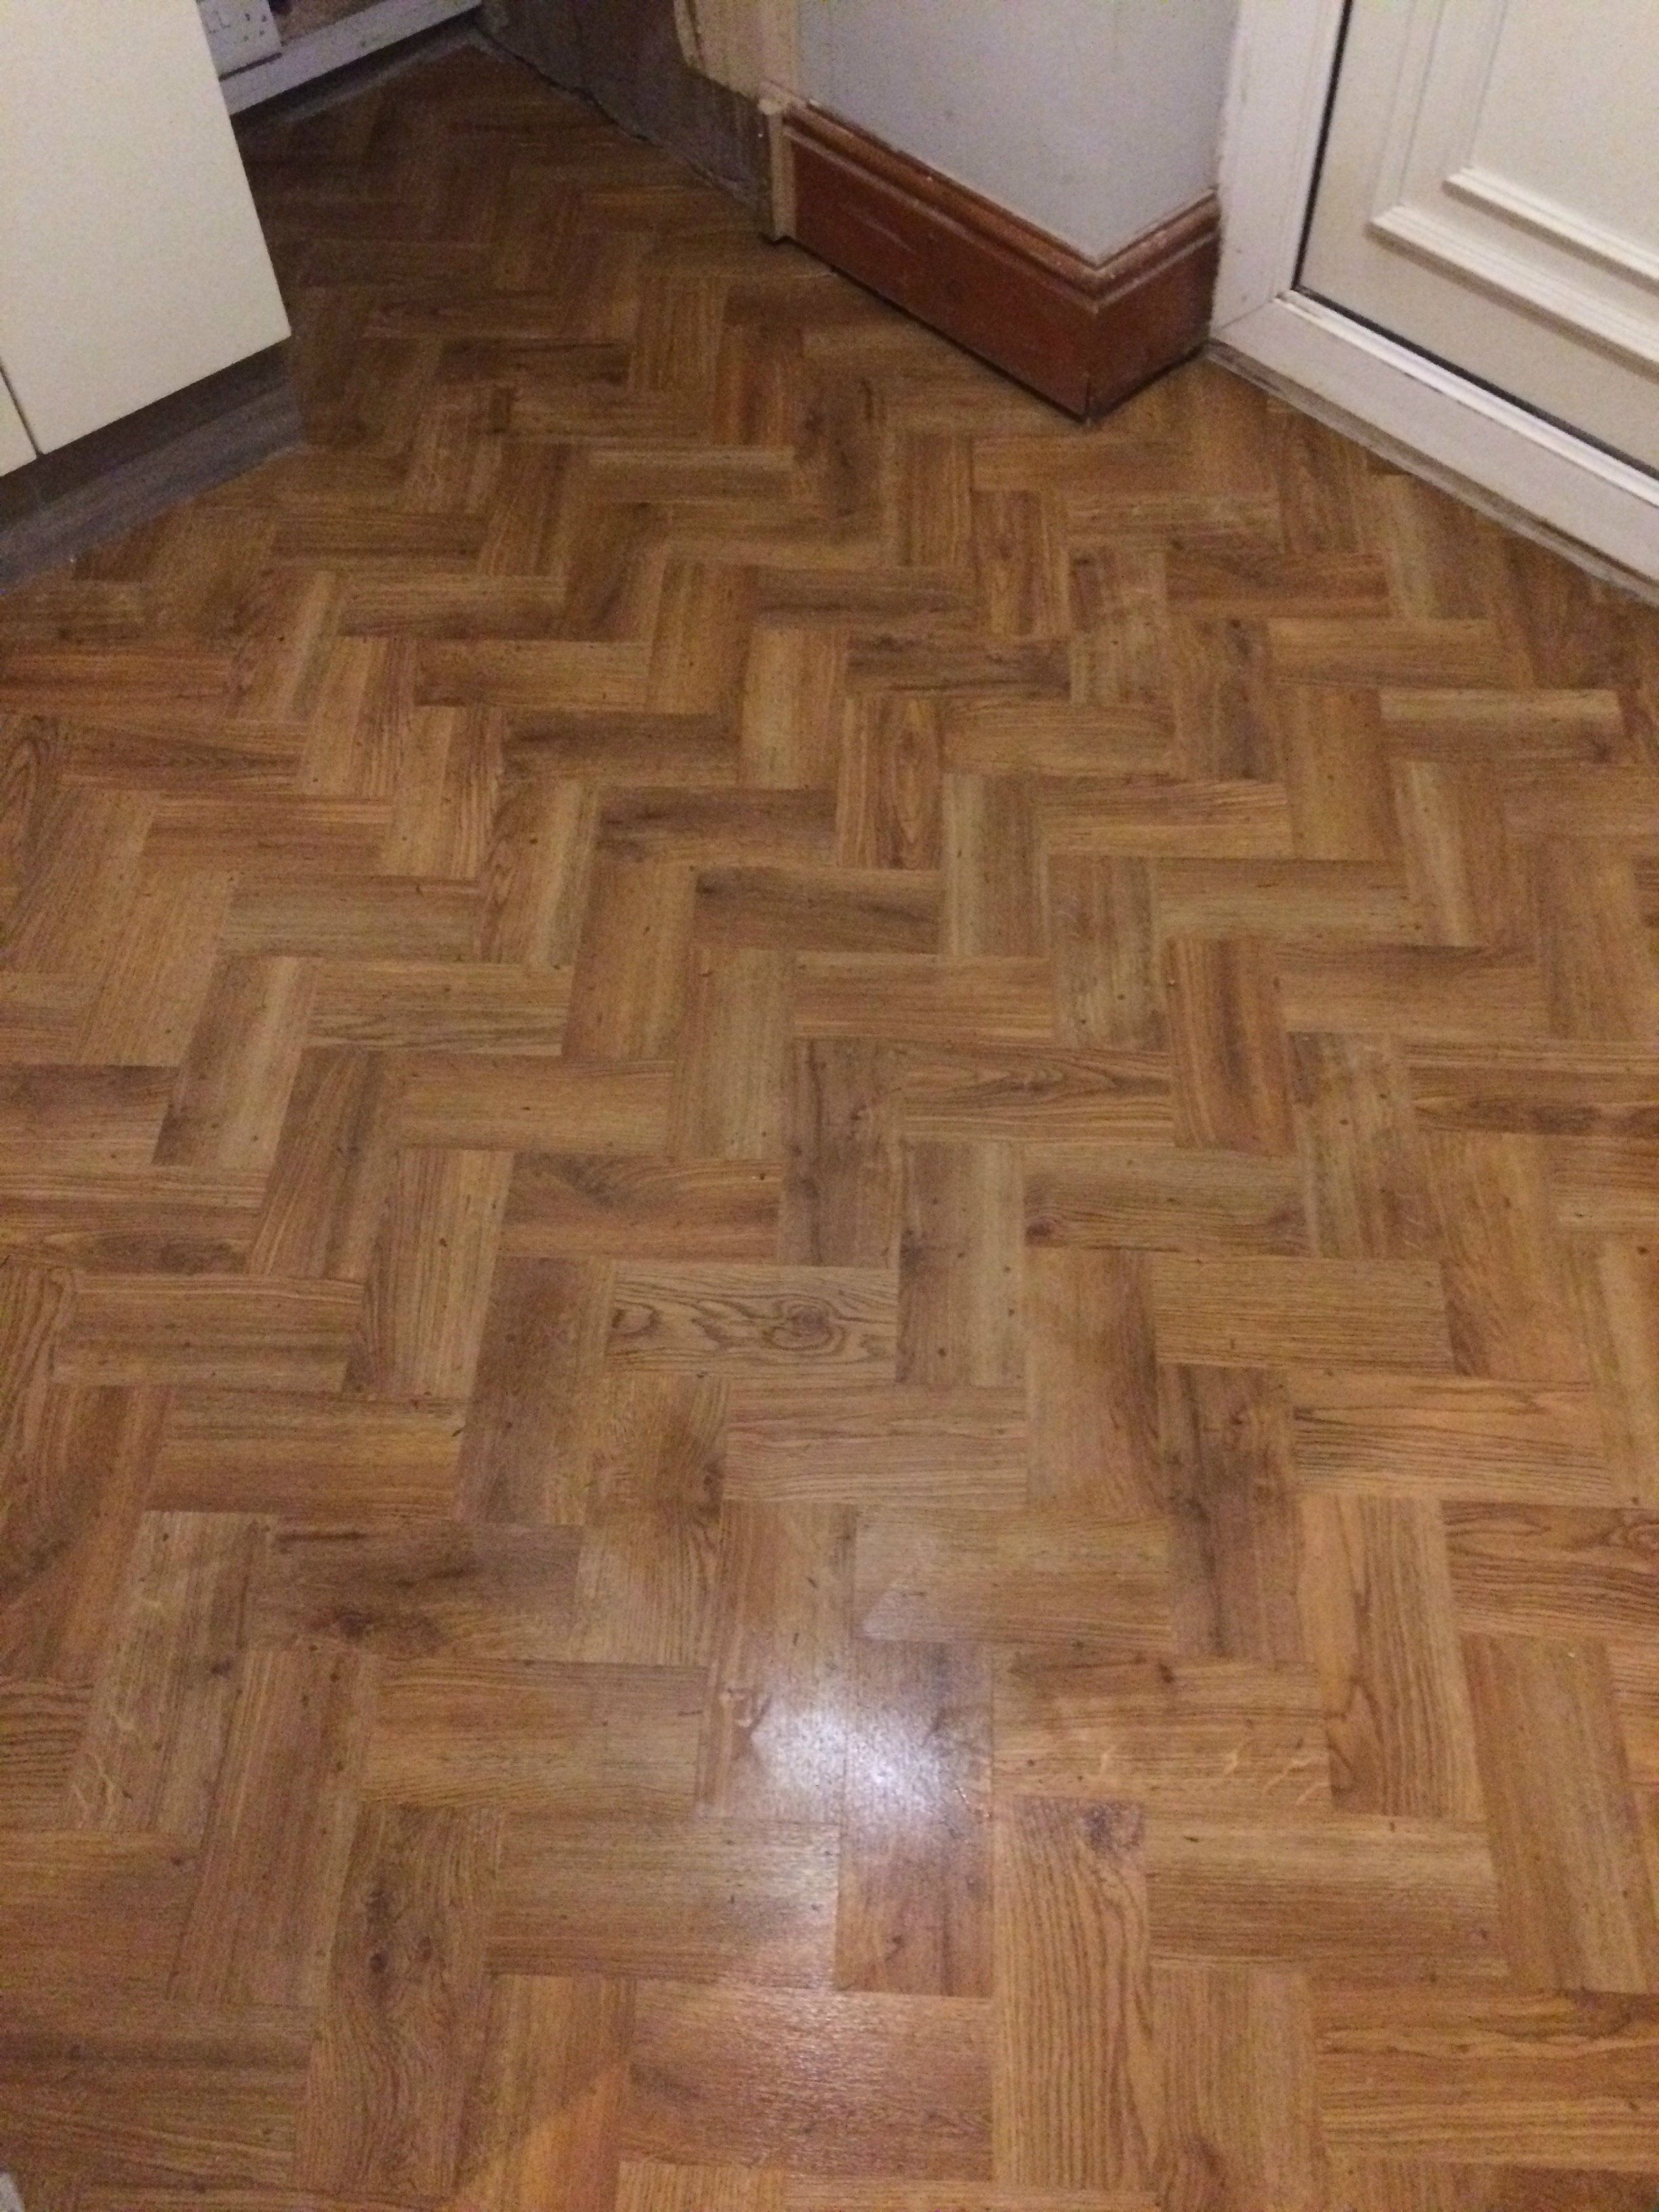 Karndean Knight tile LVT colour Victorian Oak in the